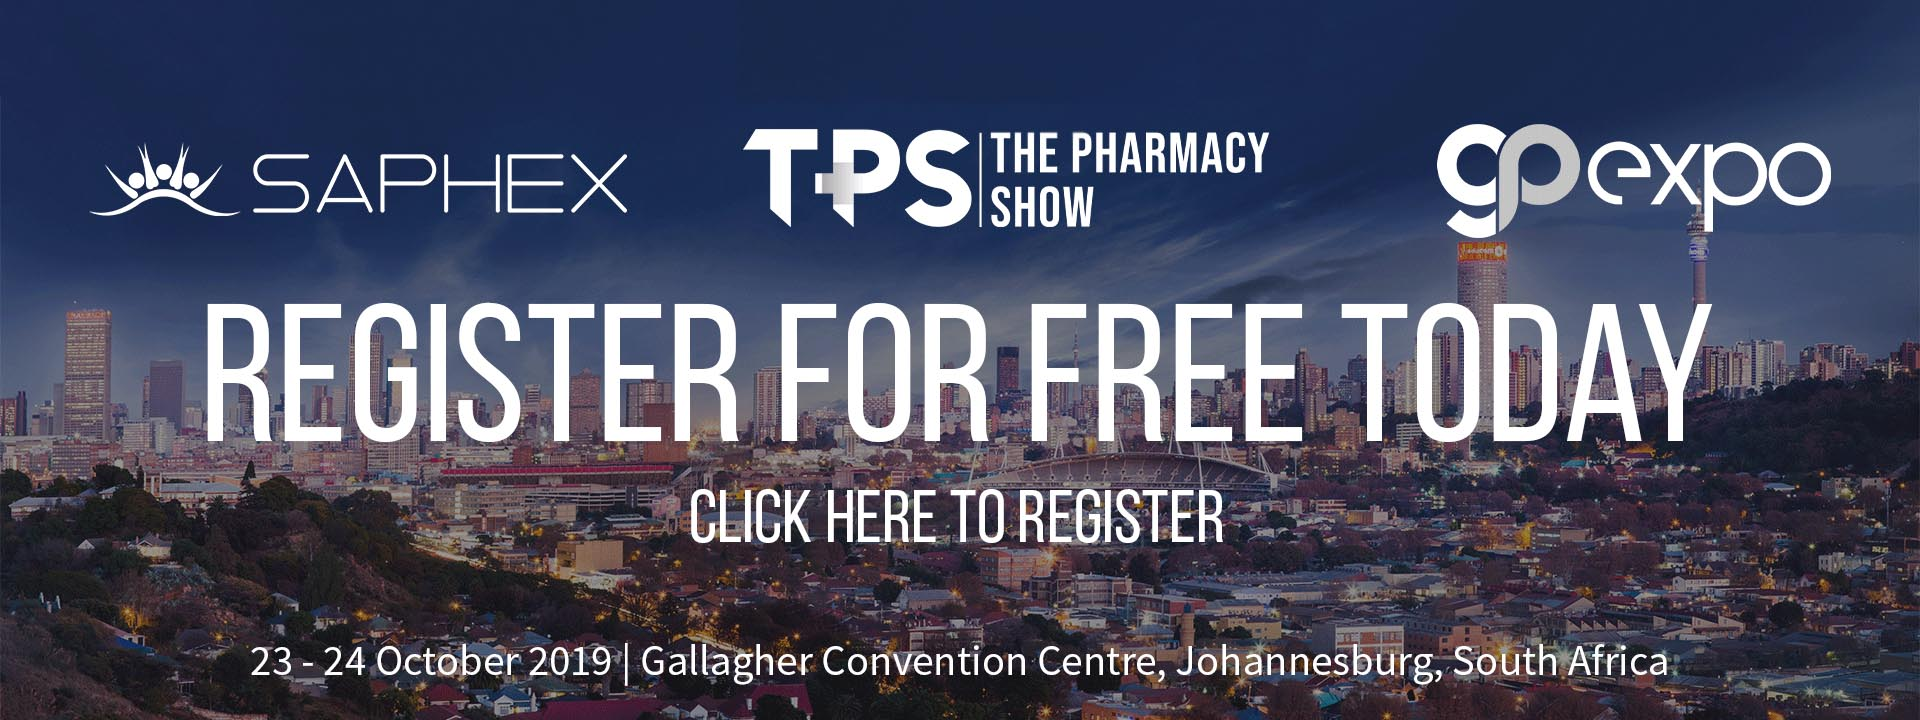 IPASA | The Innovative Pharmaceutical Association South Africa